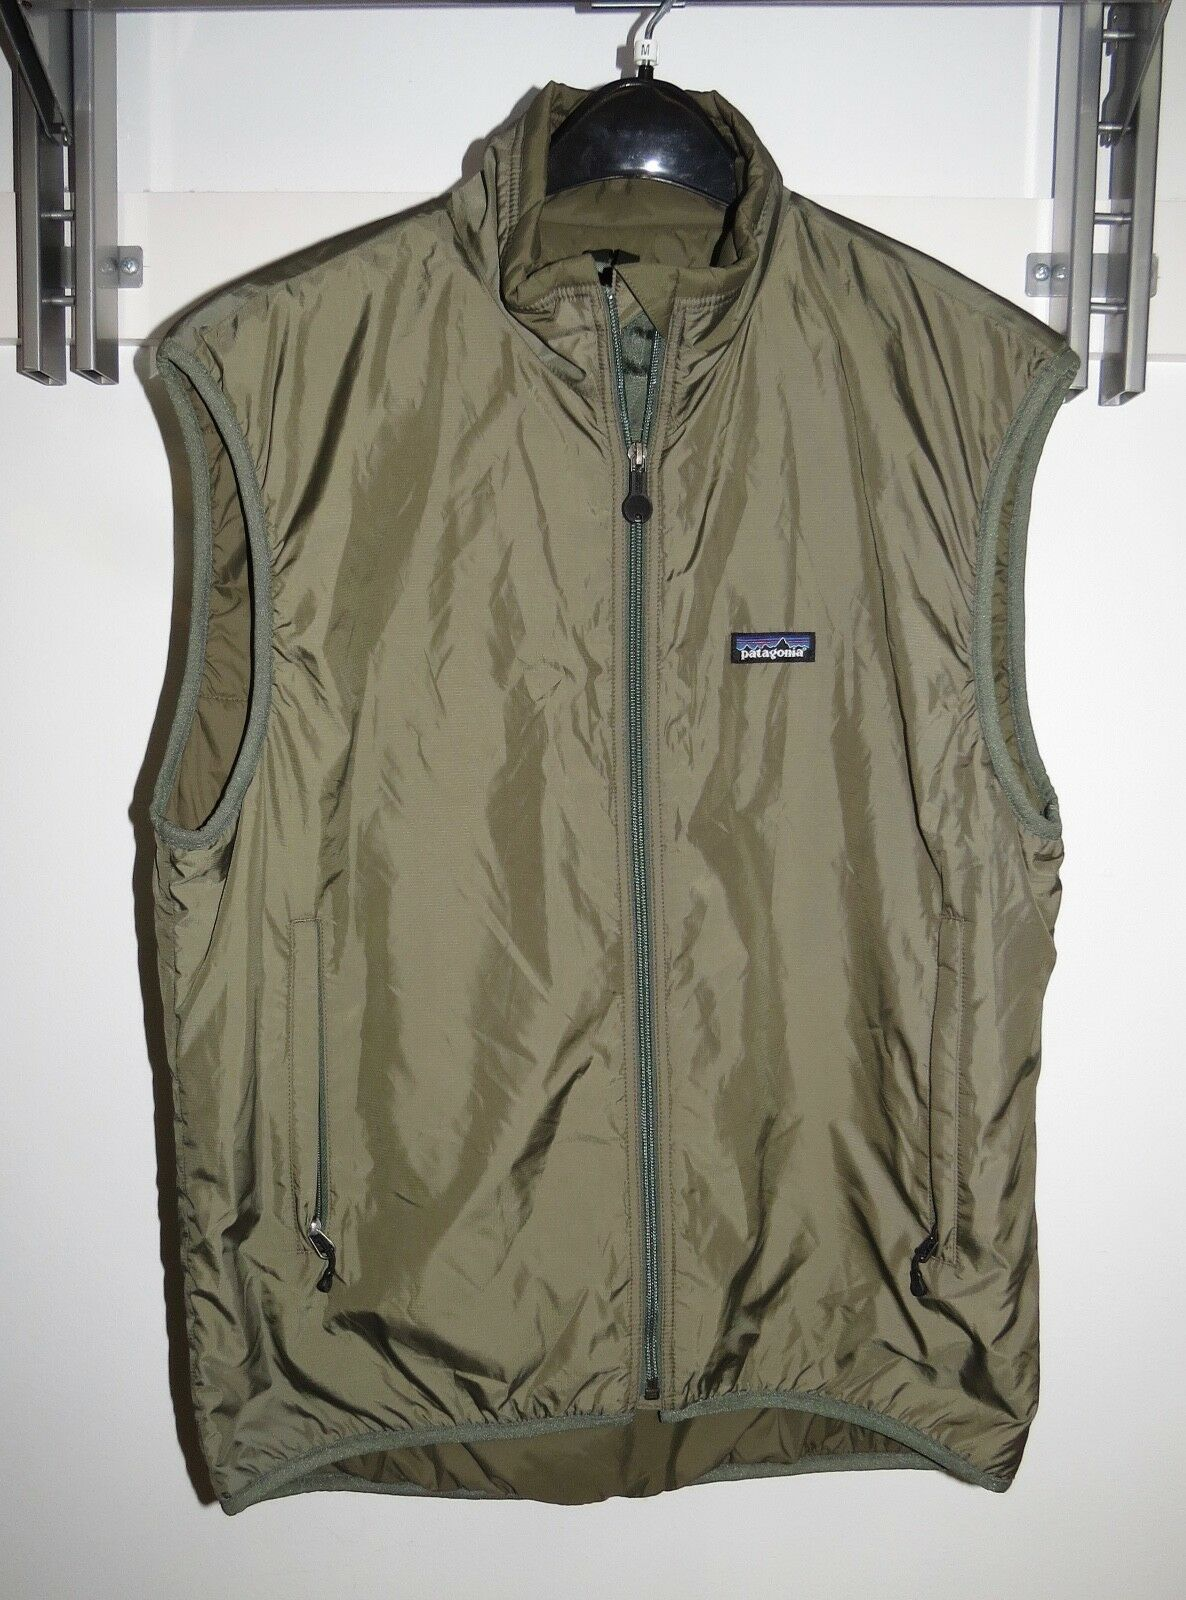 Patagonia Puff-Ball Size Vest ALP Size Puff-Ball Medium special forces Style 19005 X15 verde a13514